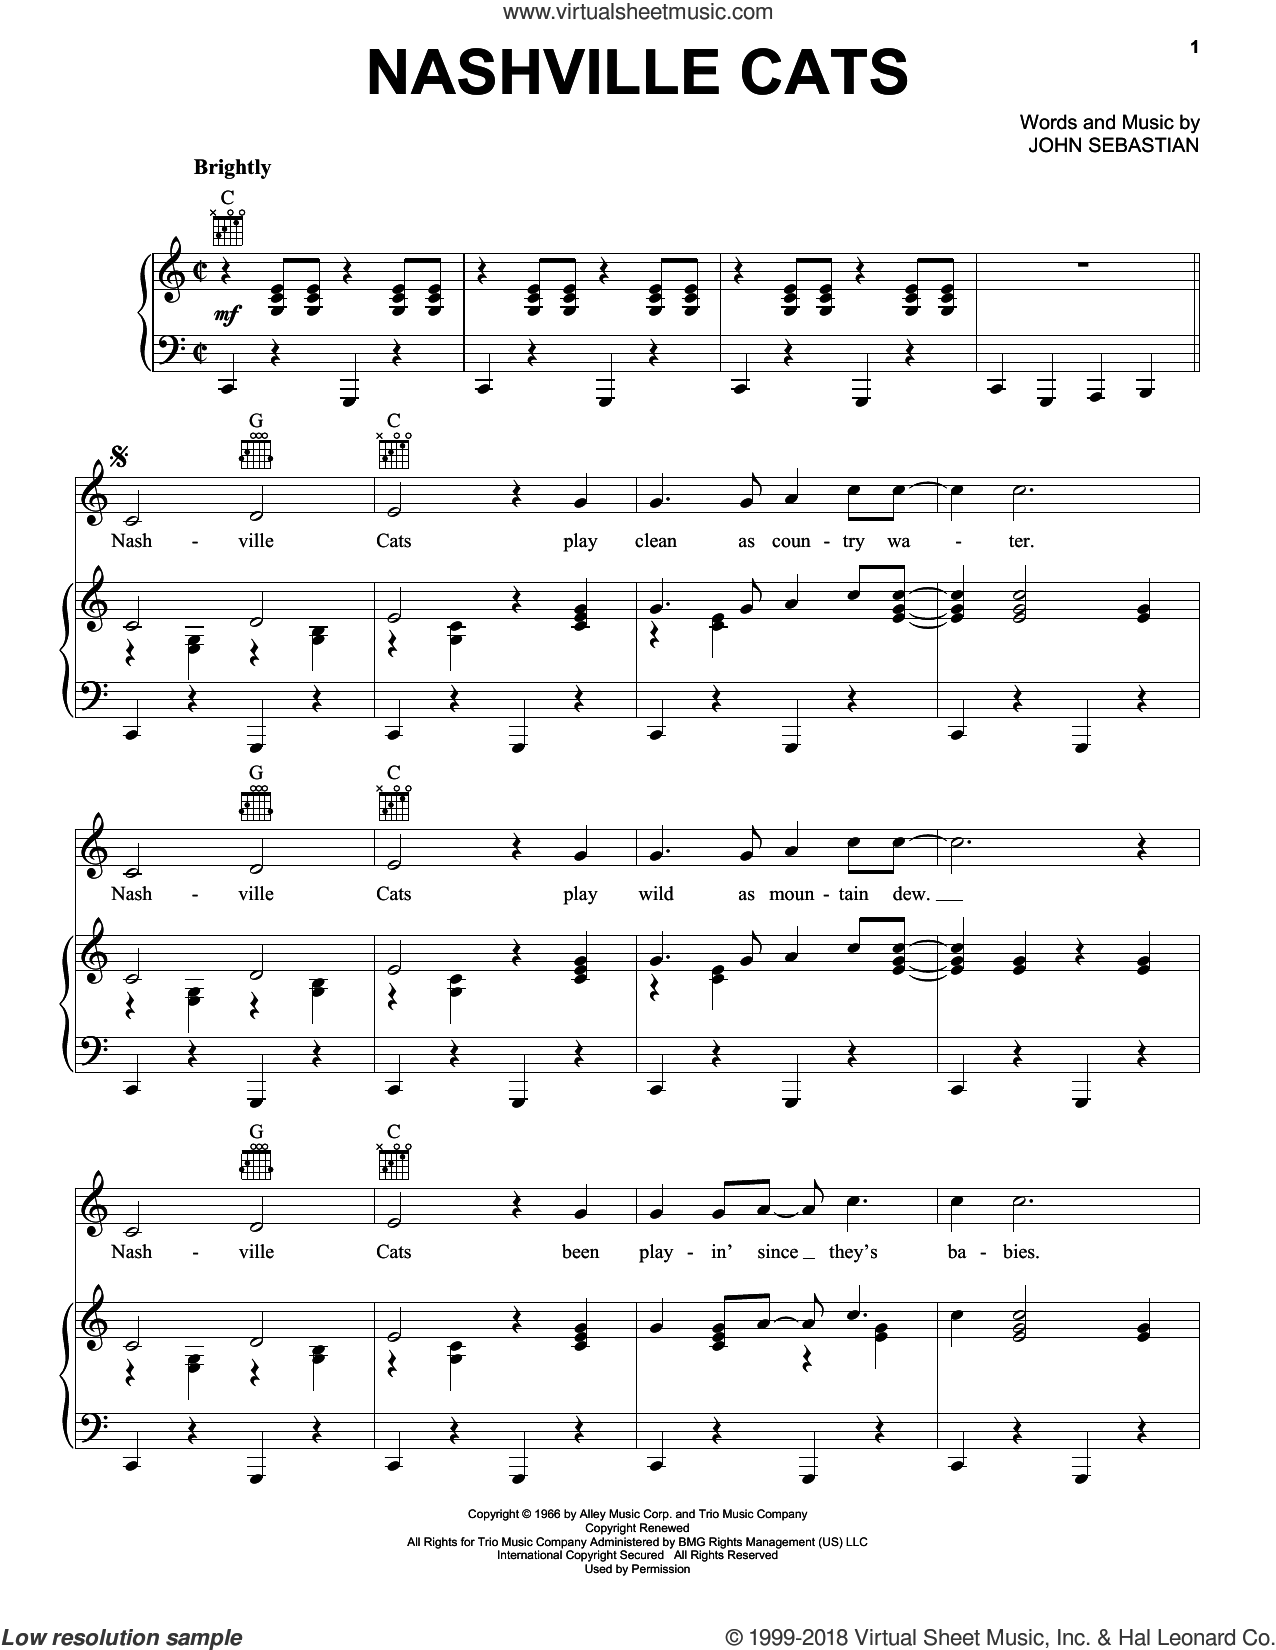 Nashville Cats sheet music for voice, piano or guitar by Lovin' Spoonful and John Sebastian, intermediate skill level